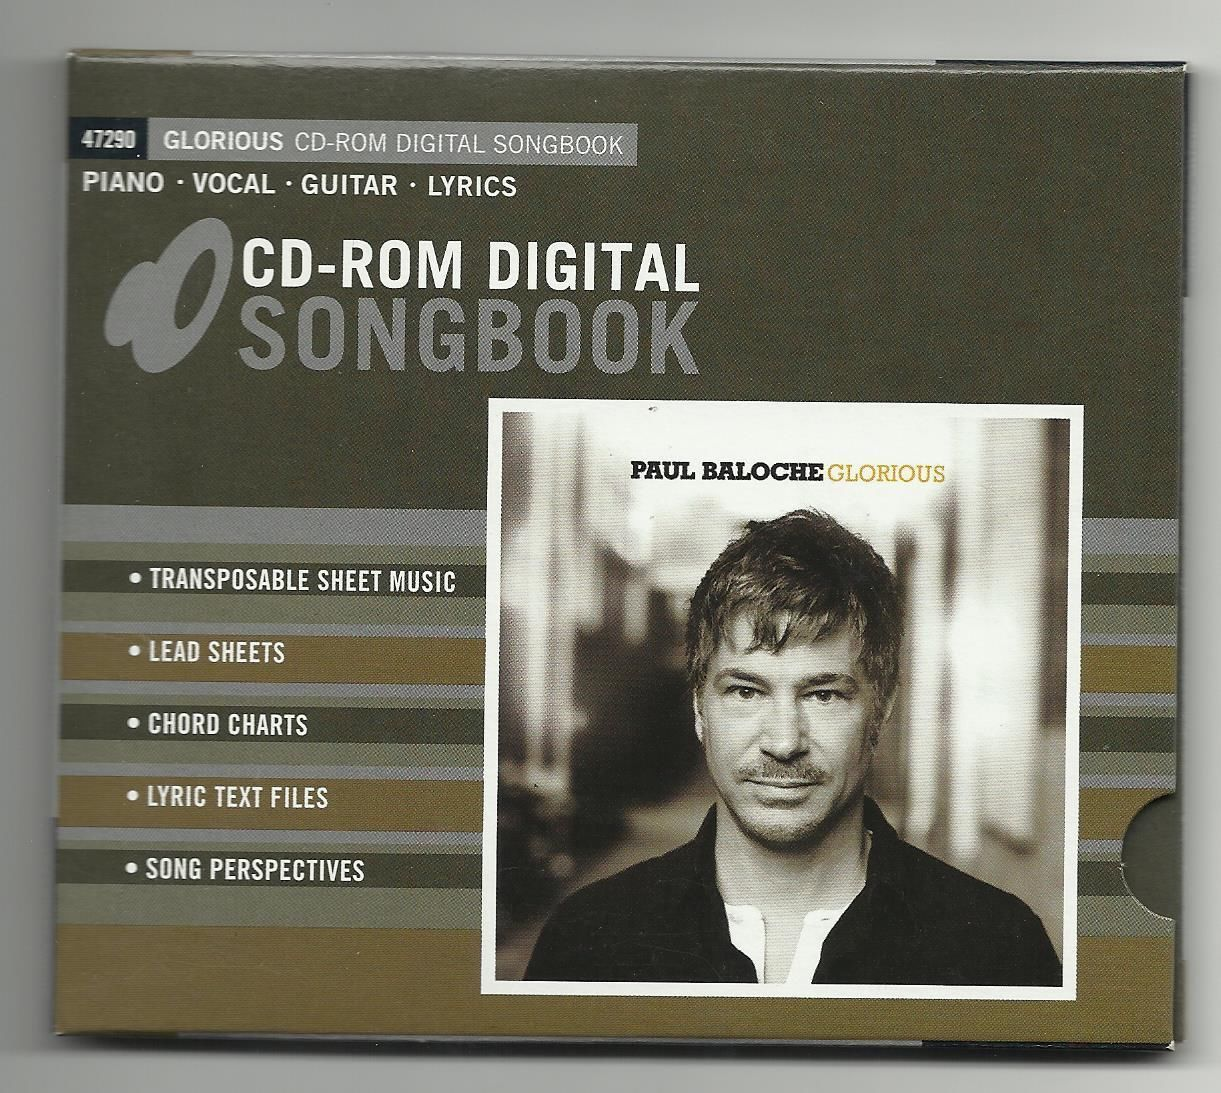 Primary image for Paul Baloche Glorious CD-Rom Digital Songbook - sheet music, lead sheets, etc